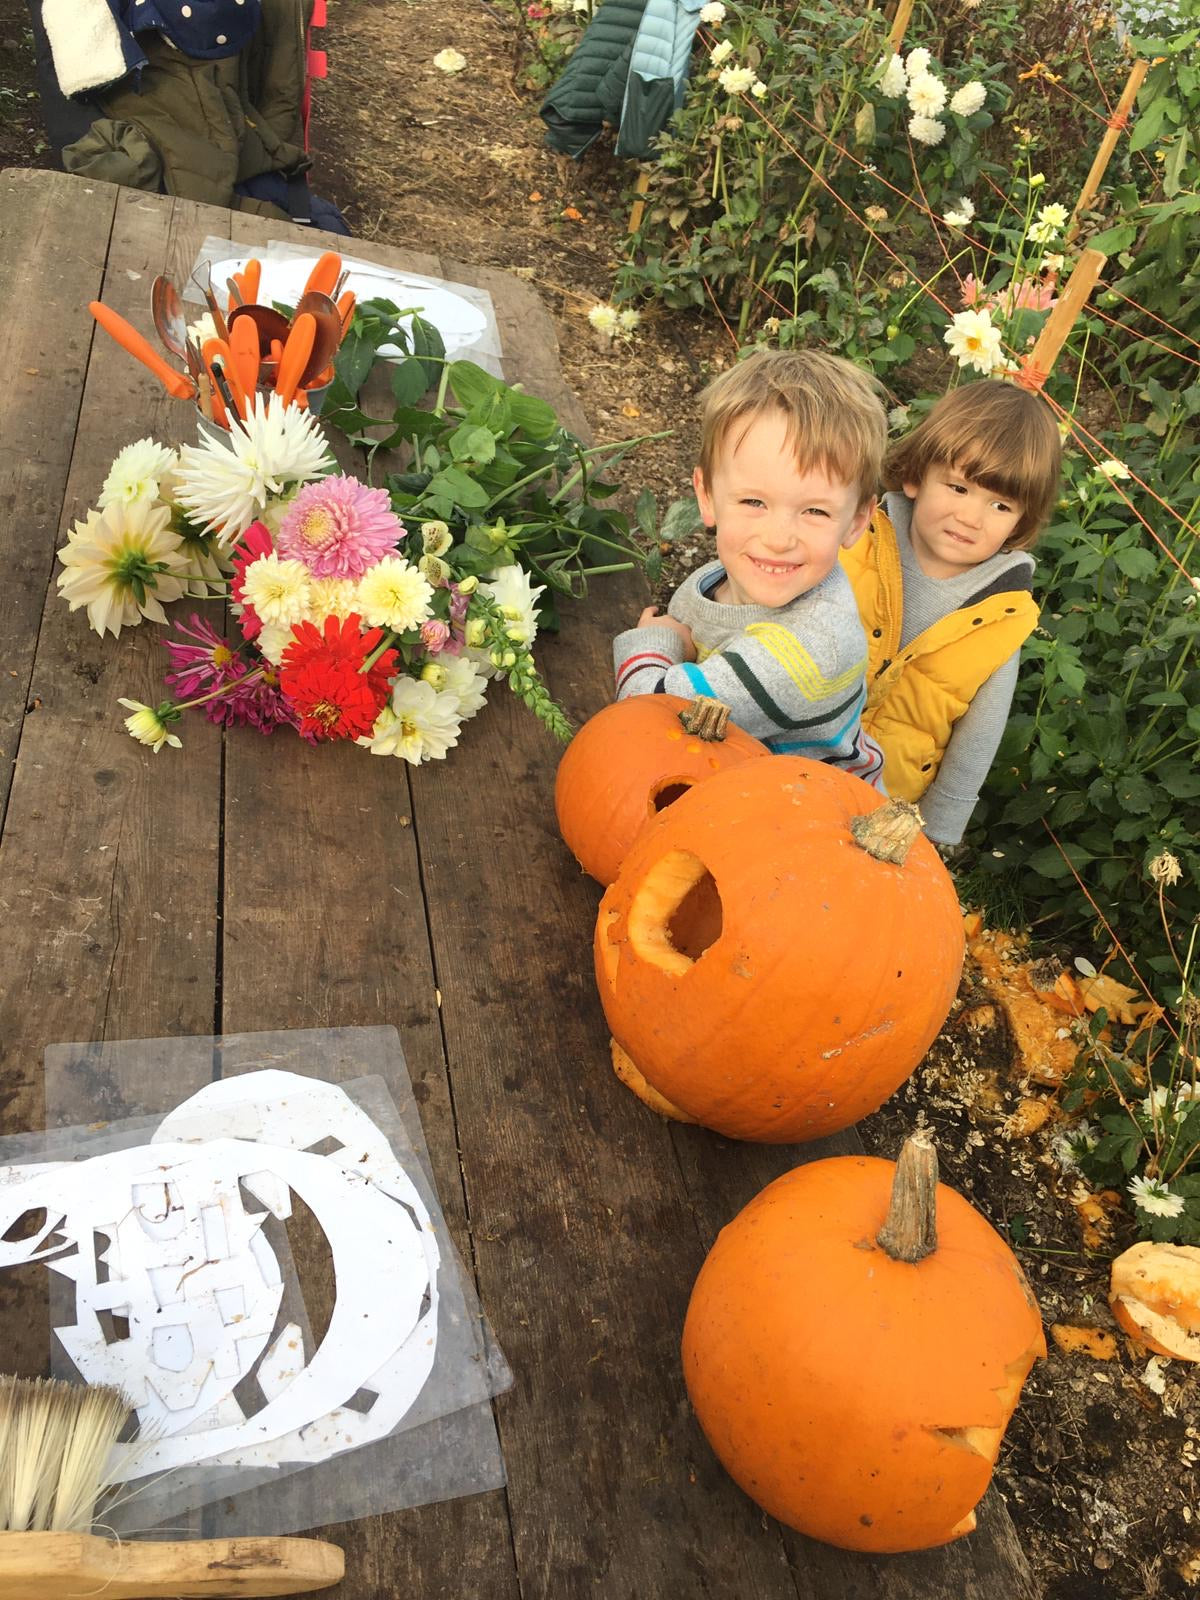 Pumpkins, spooky walks and fun for children this Halloween